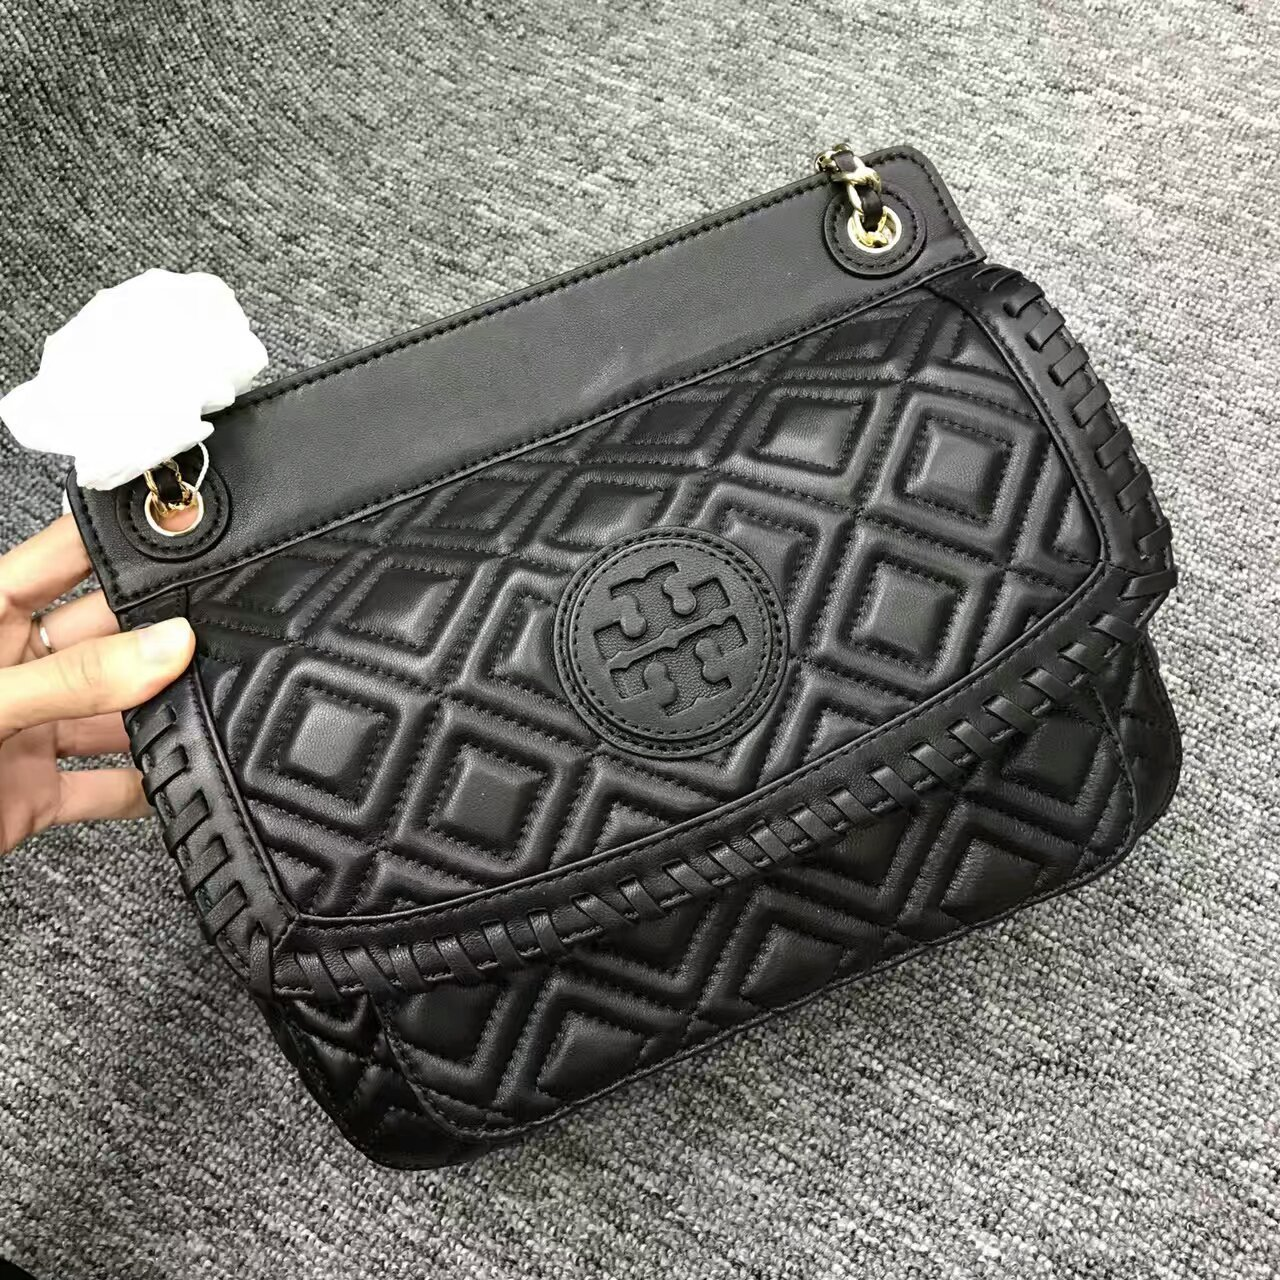 402962cd766b Mmexport1481877106190. Mmexport1481877106190. Previous. Authentic Tory  Burch Marion Quilted Small Shoulder Bag